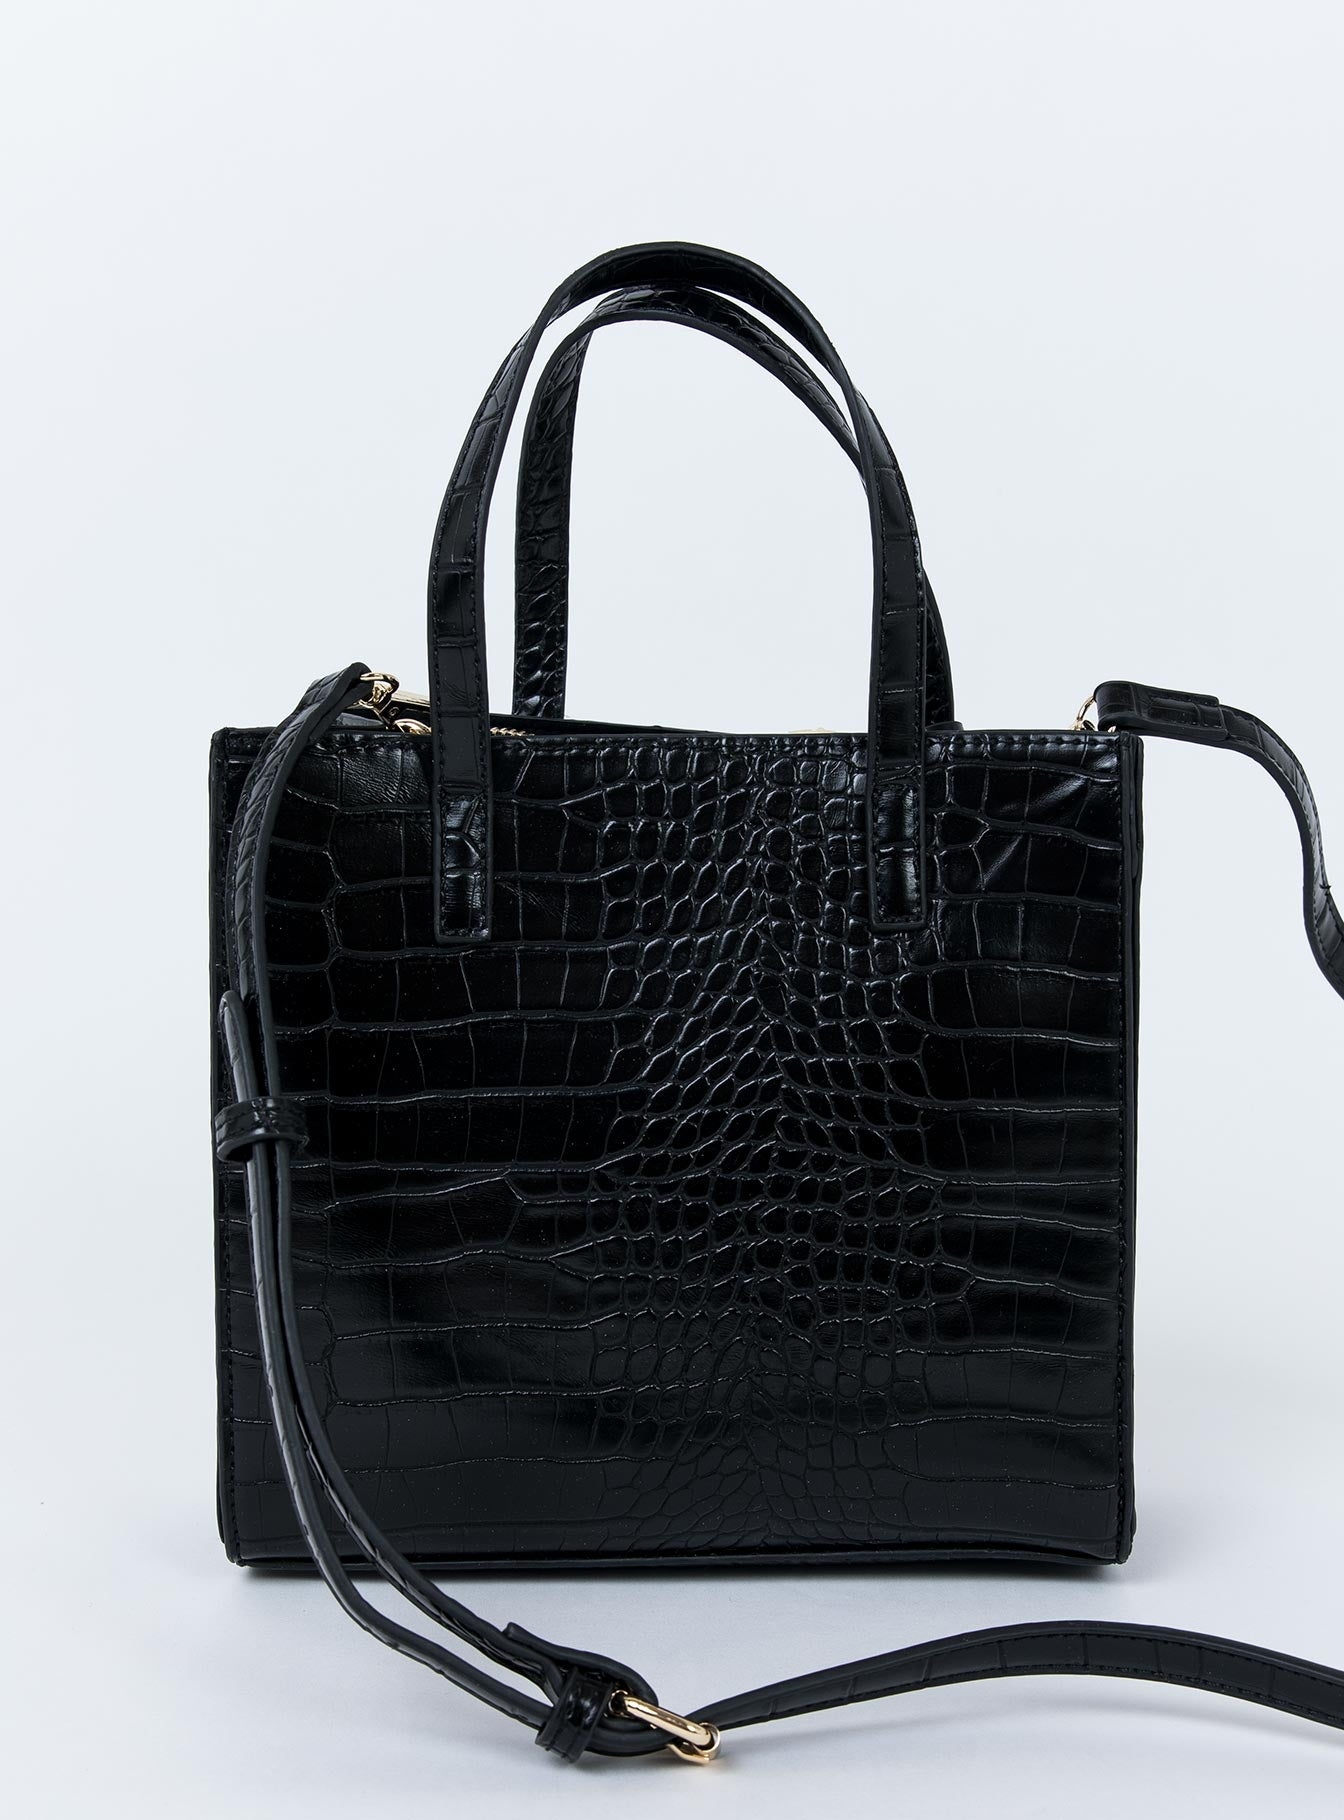 Peta & Jain Macey Bag Black Croc